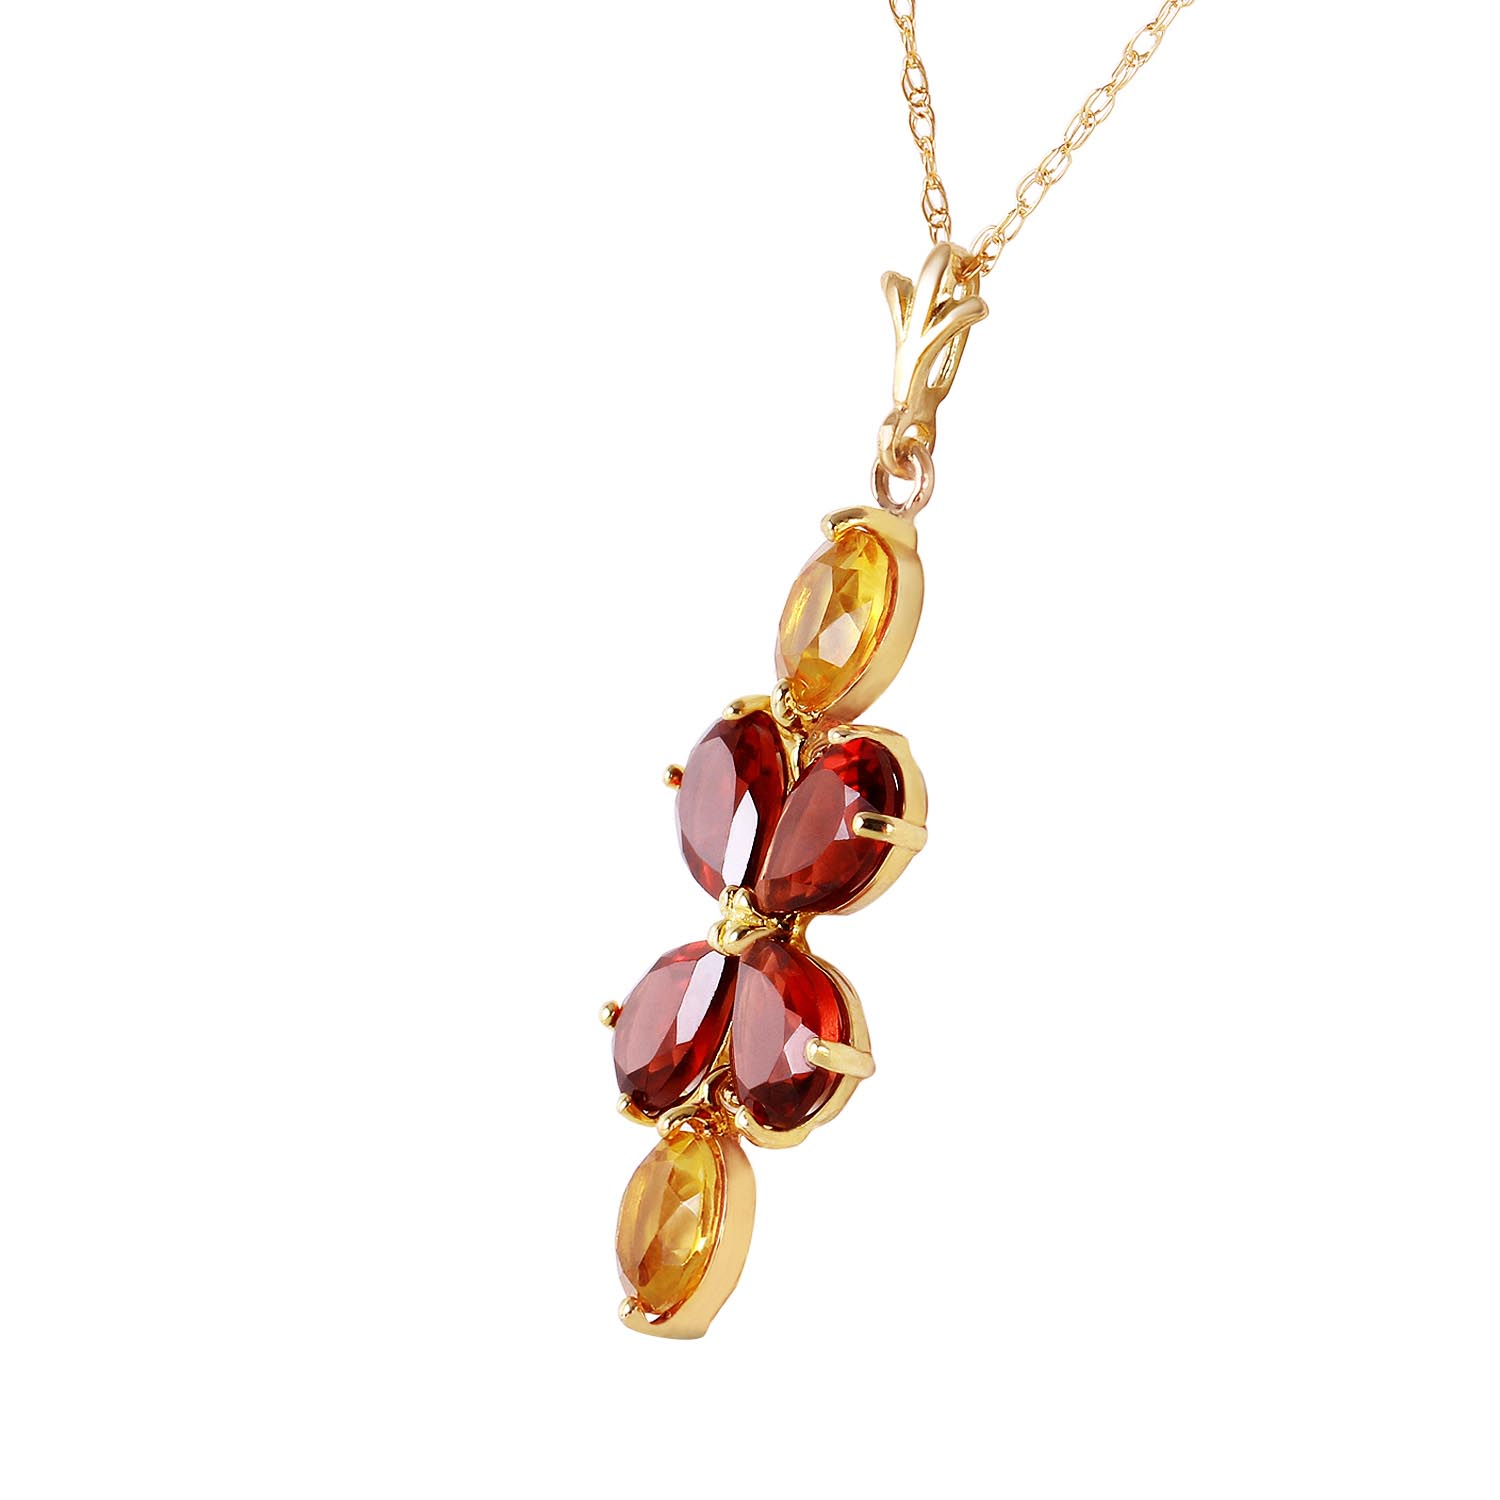 Garnet and Citrine Blossom Pendant Necklace 3.15ctw in 9ct Gold